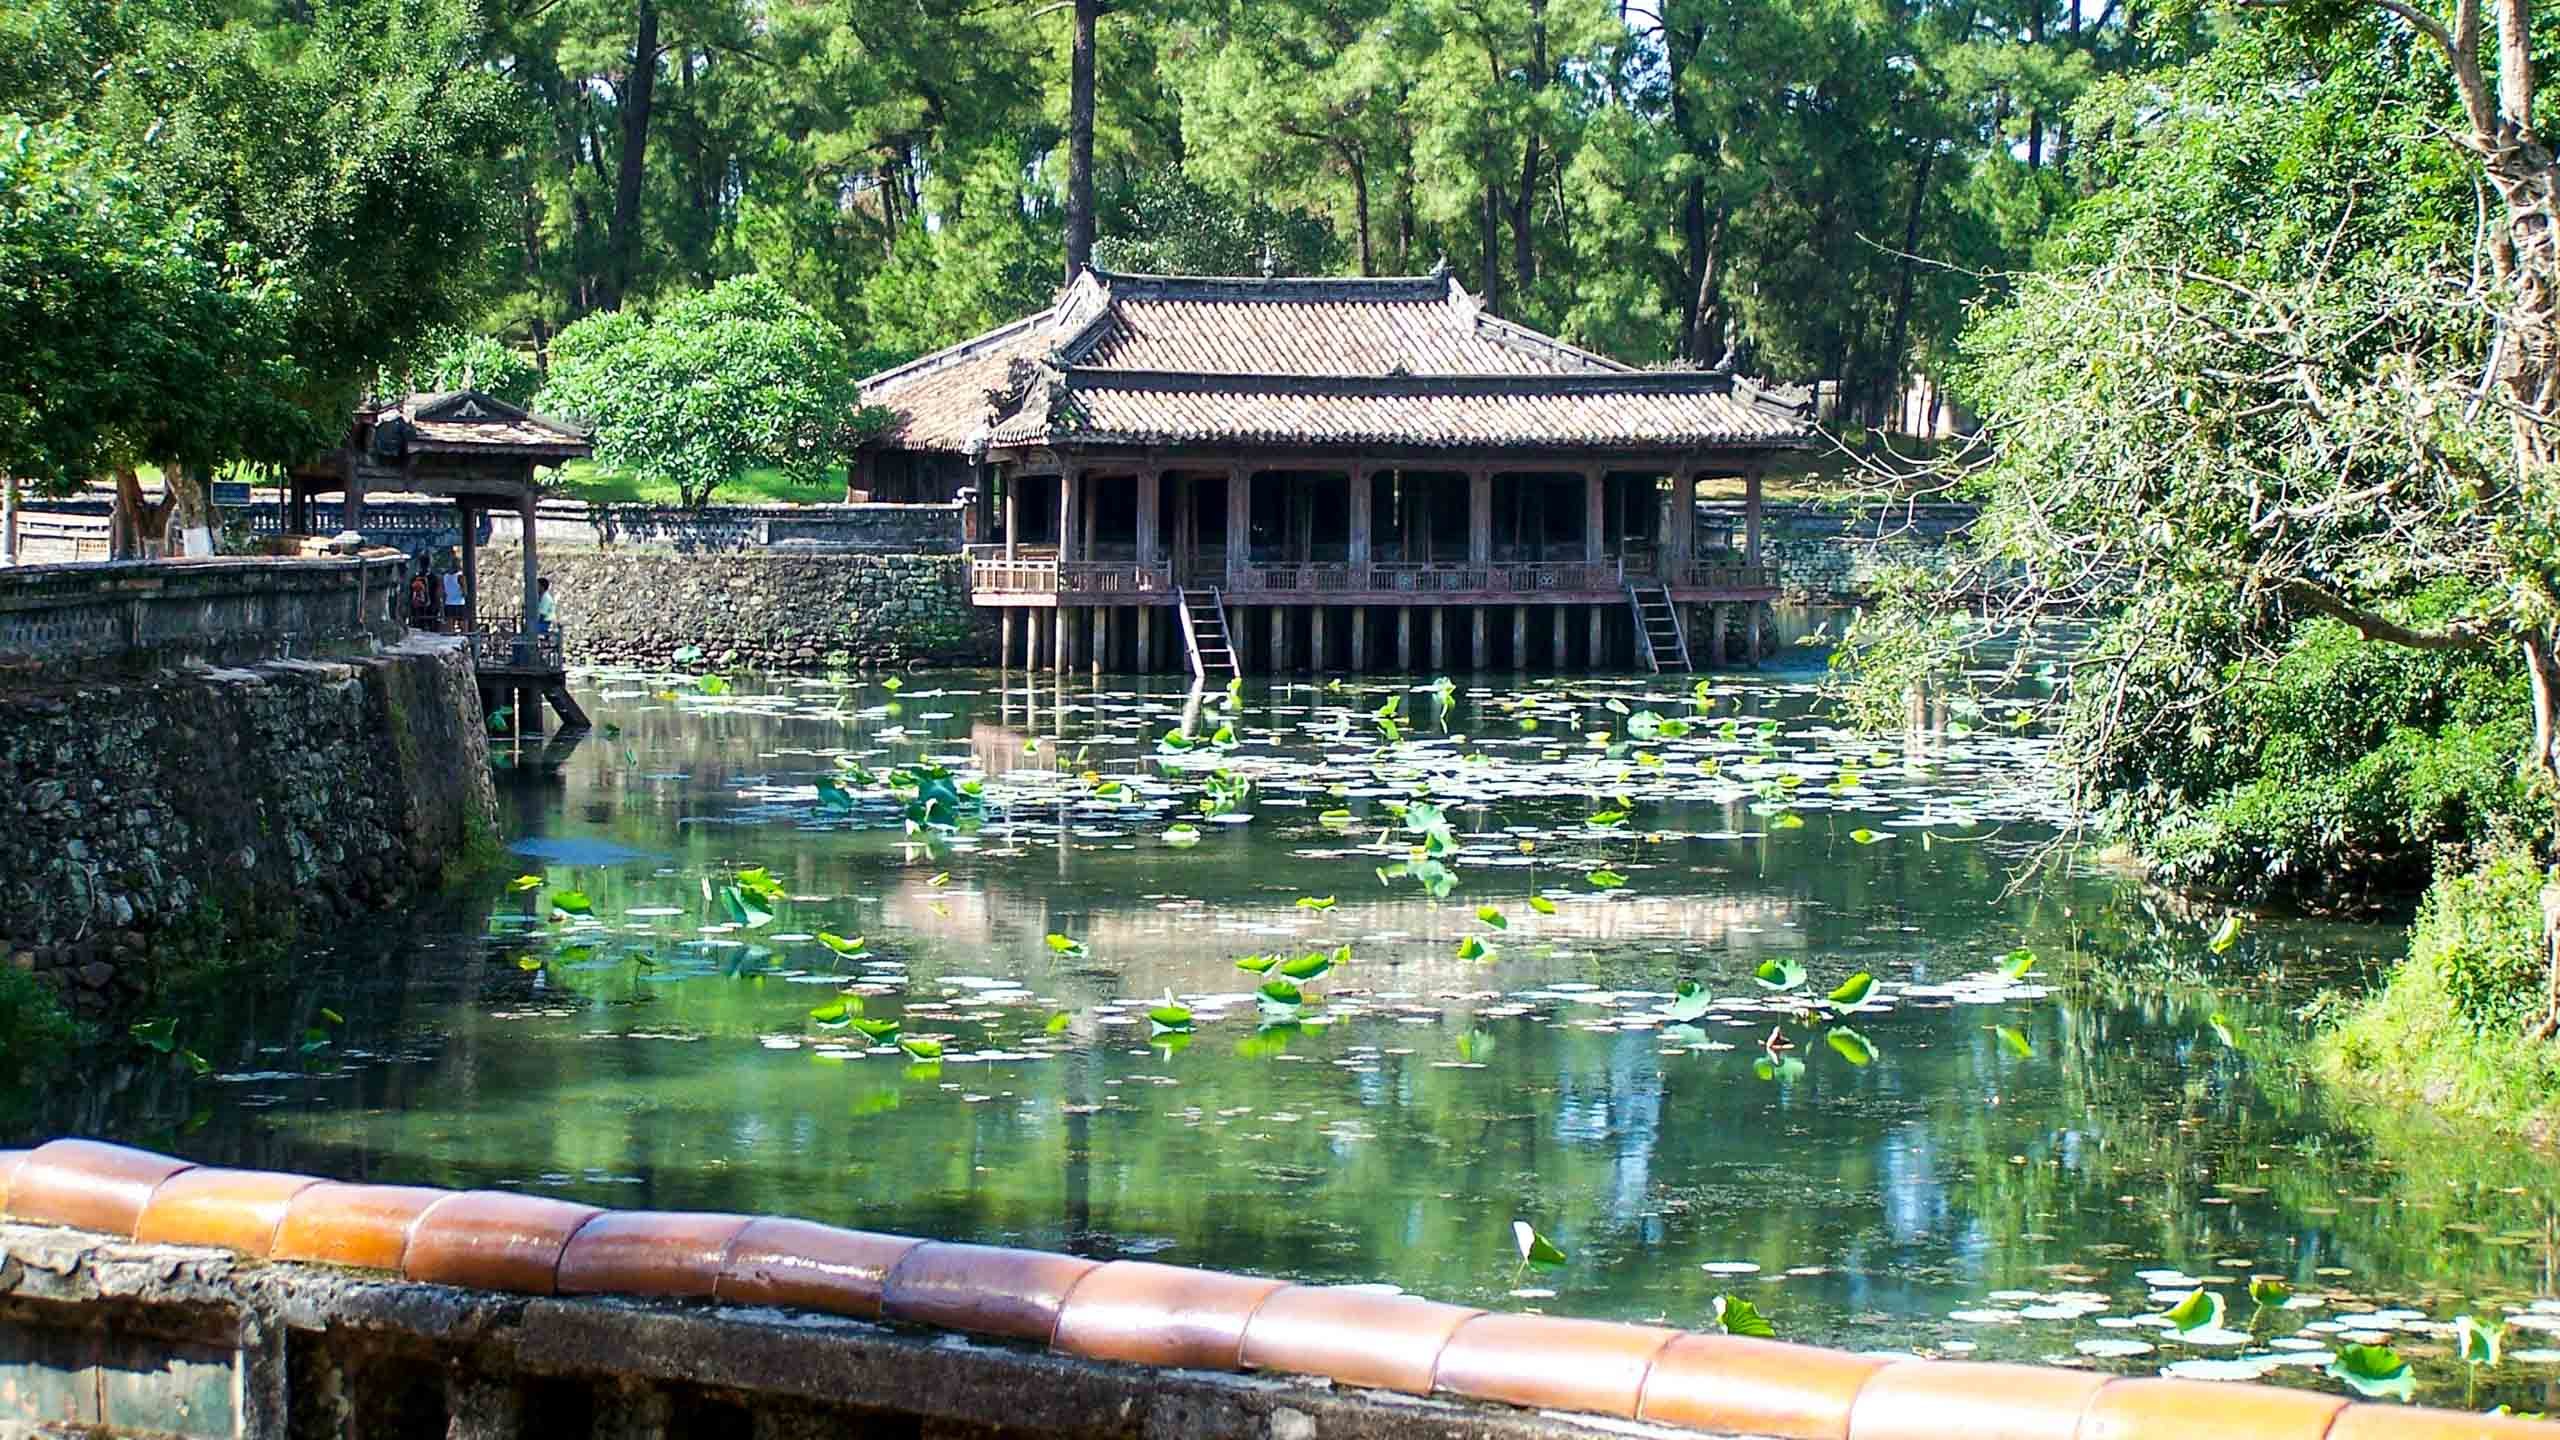 Vietnam pond and small building